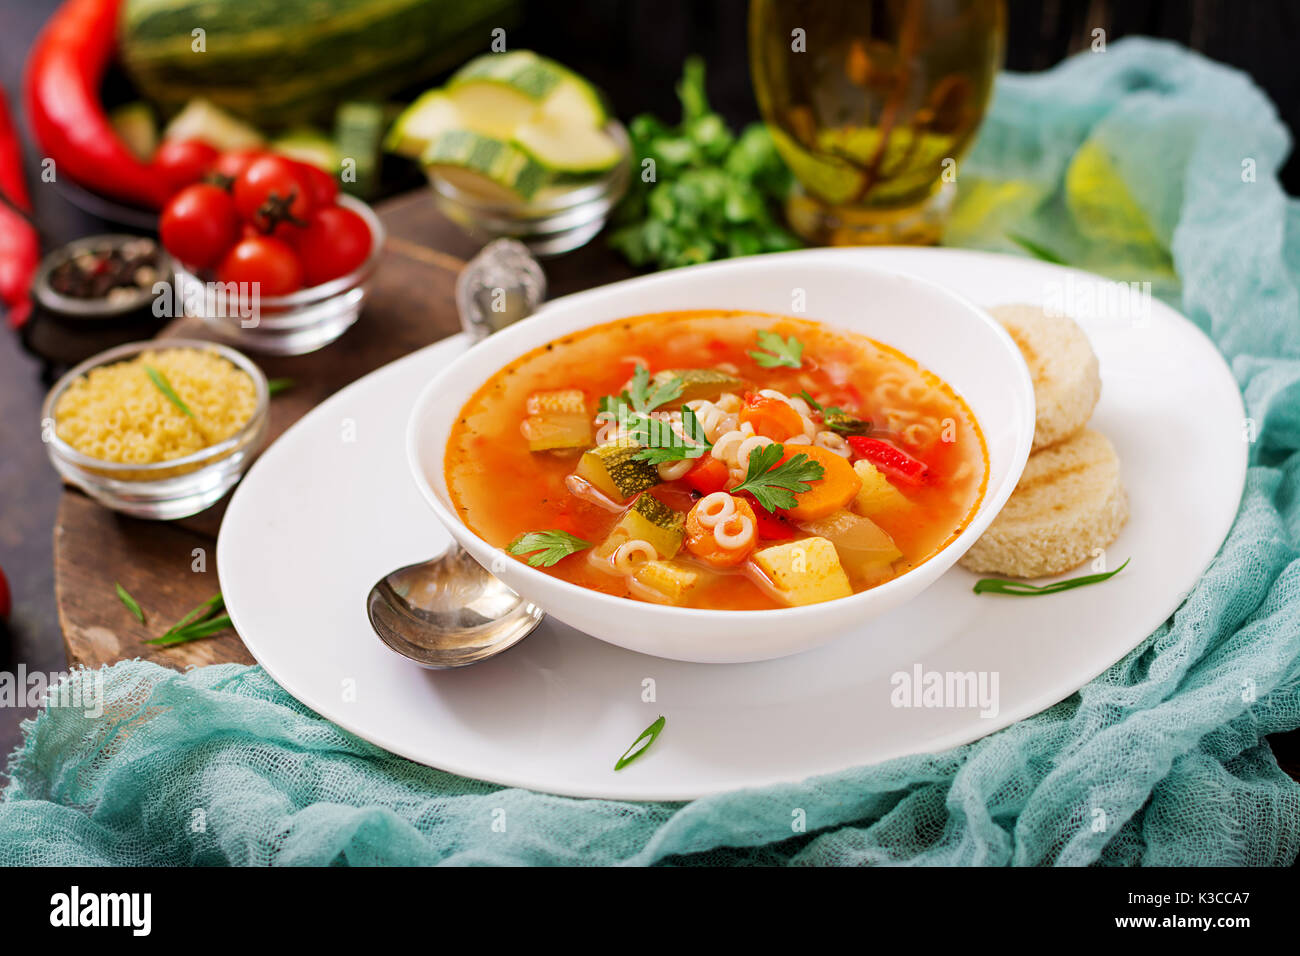 Minestrone - 'big soup', soup with many ingredients - a dish of Italian cuisine, light seasonal vegetable - Stock Image